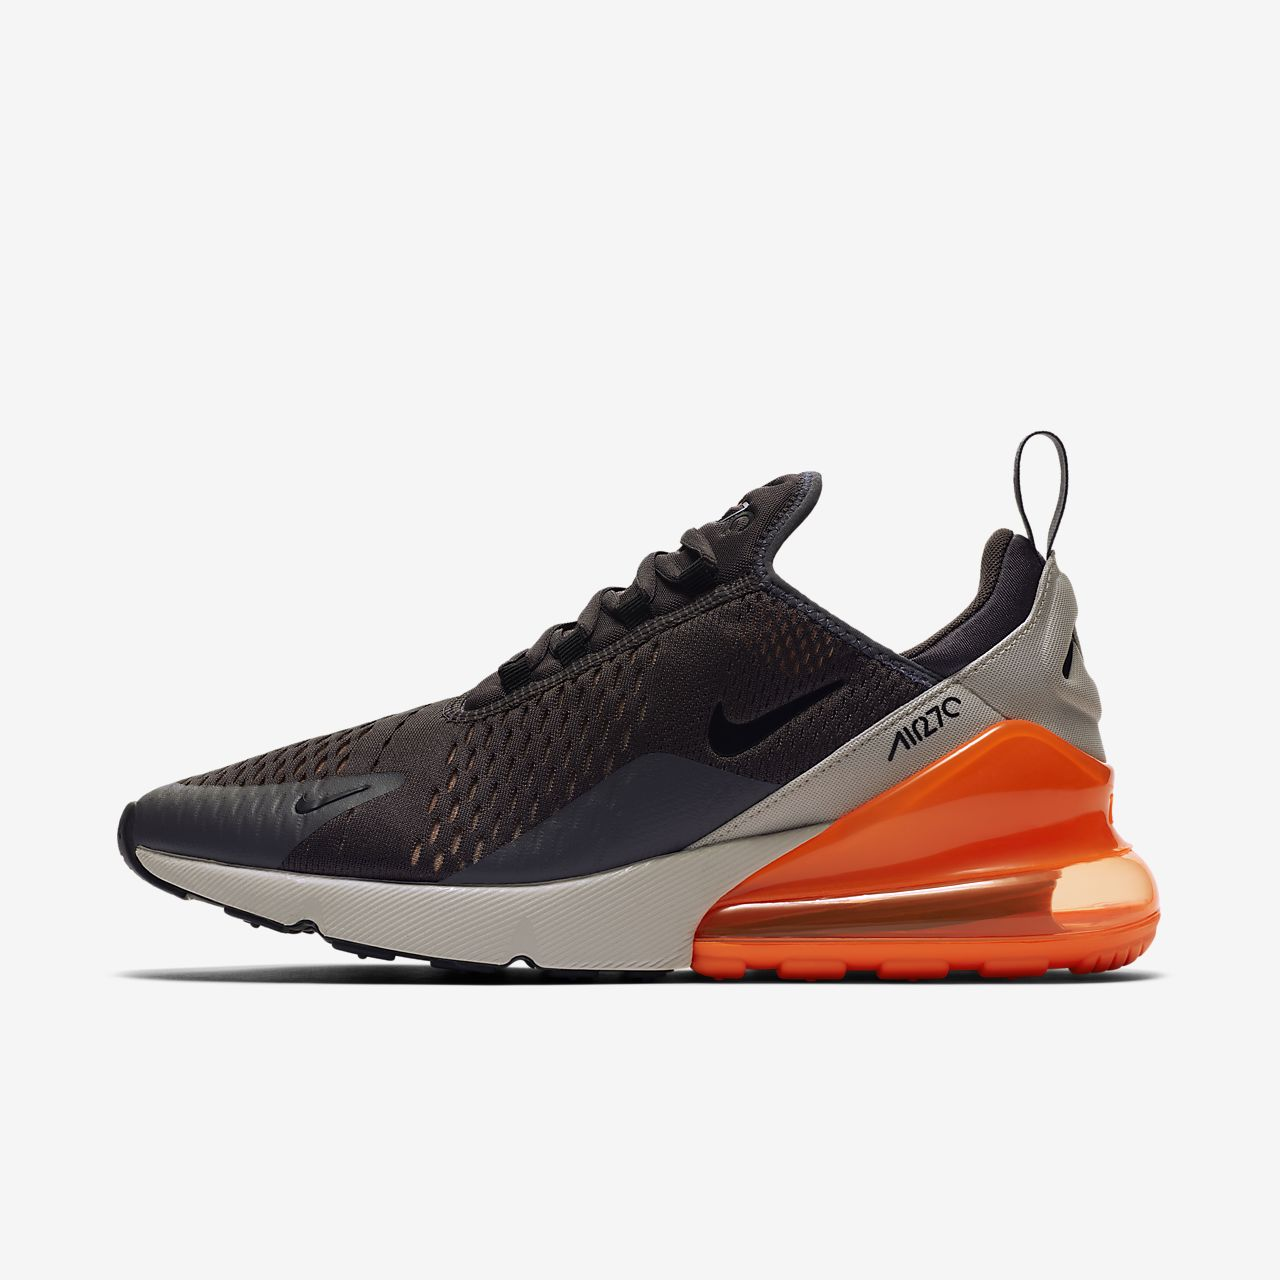 official photos new styles outlet store Nike Air Max 270 Men's Shoe